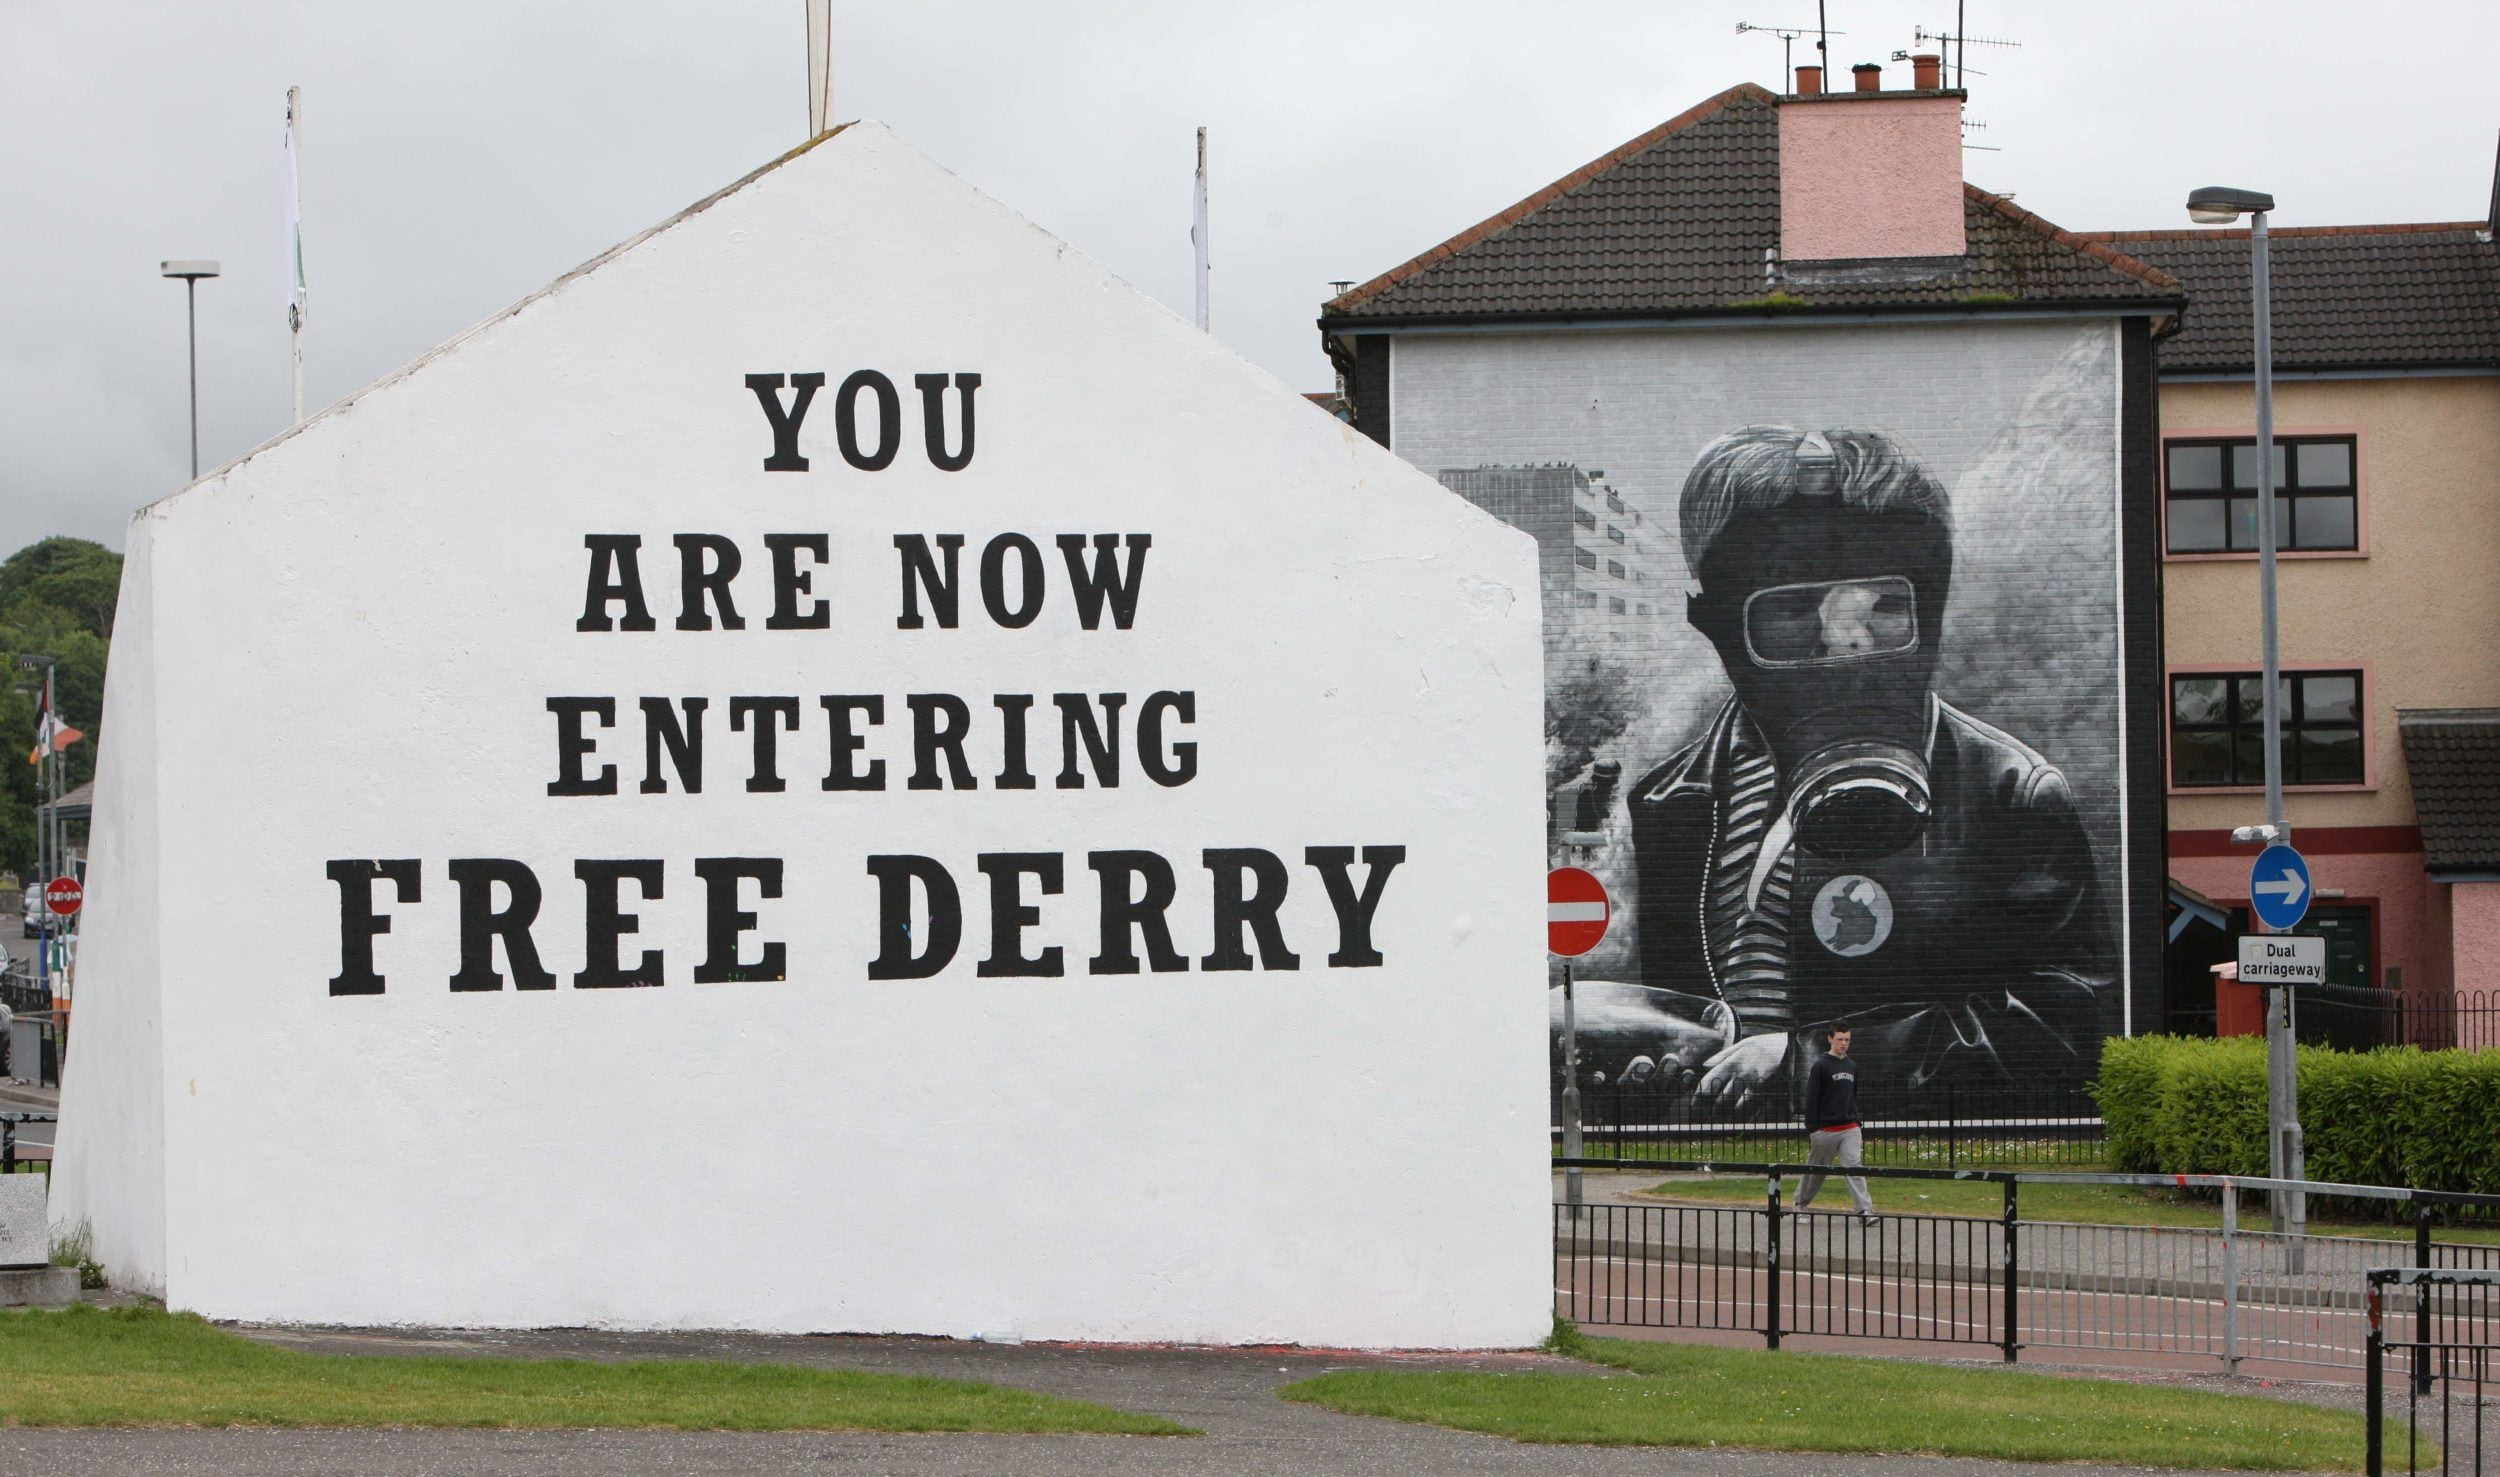 Free Derry Corner Gas Mask Images